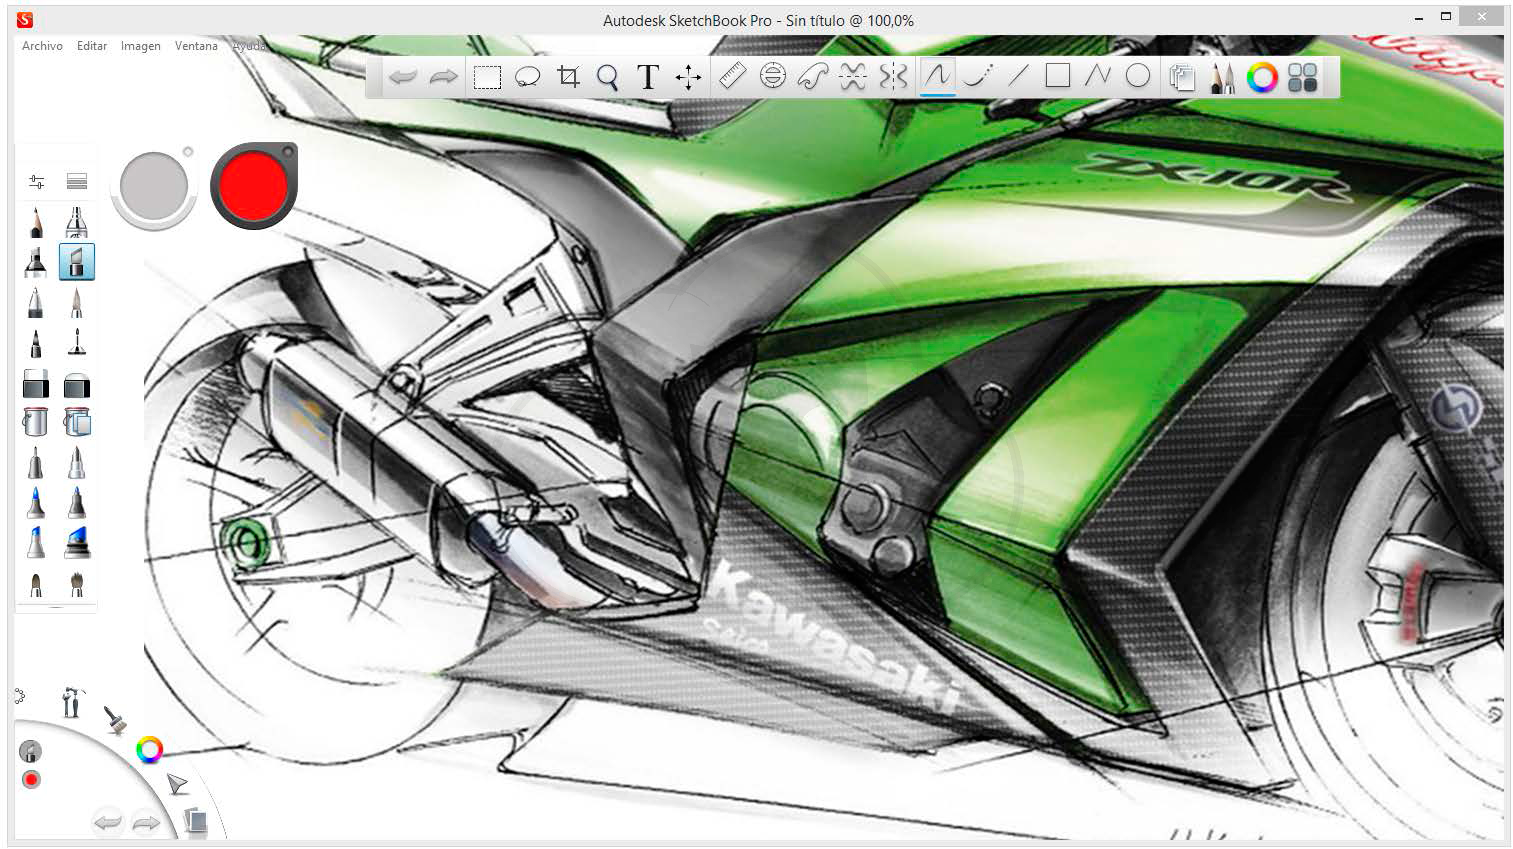 Autodesk SketchBook Pro 3 2 Apk is Here! [LATEST] | On HAX